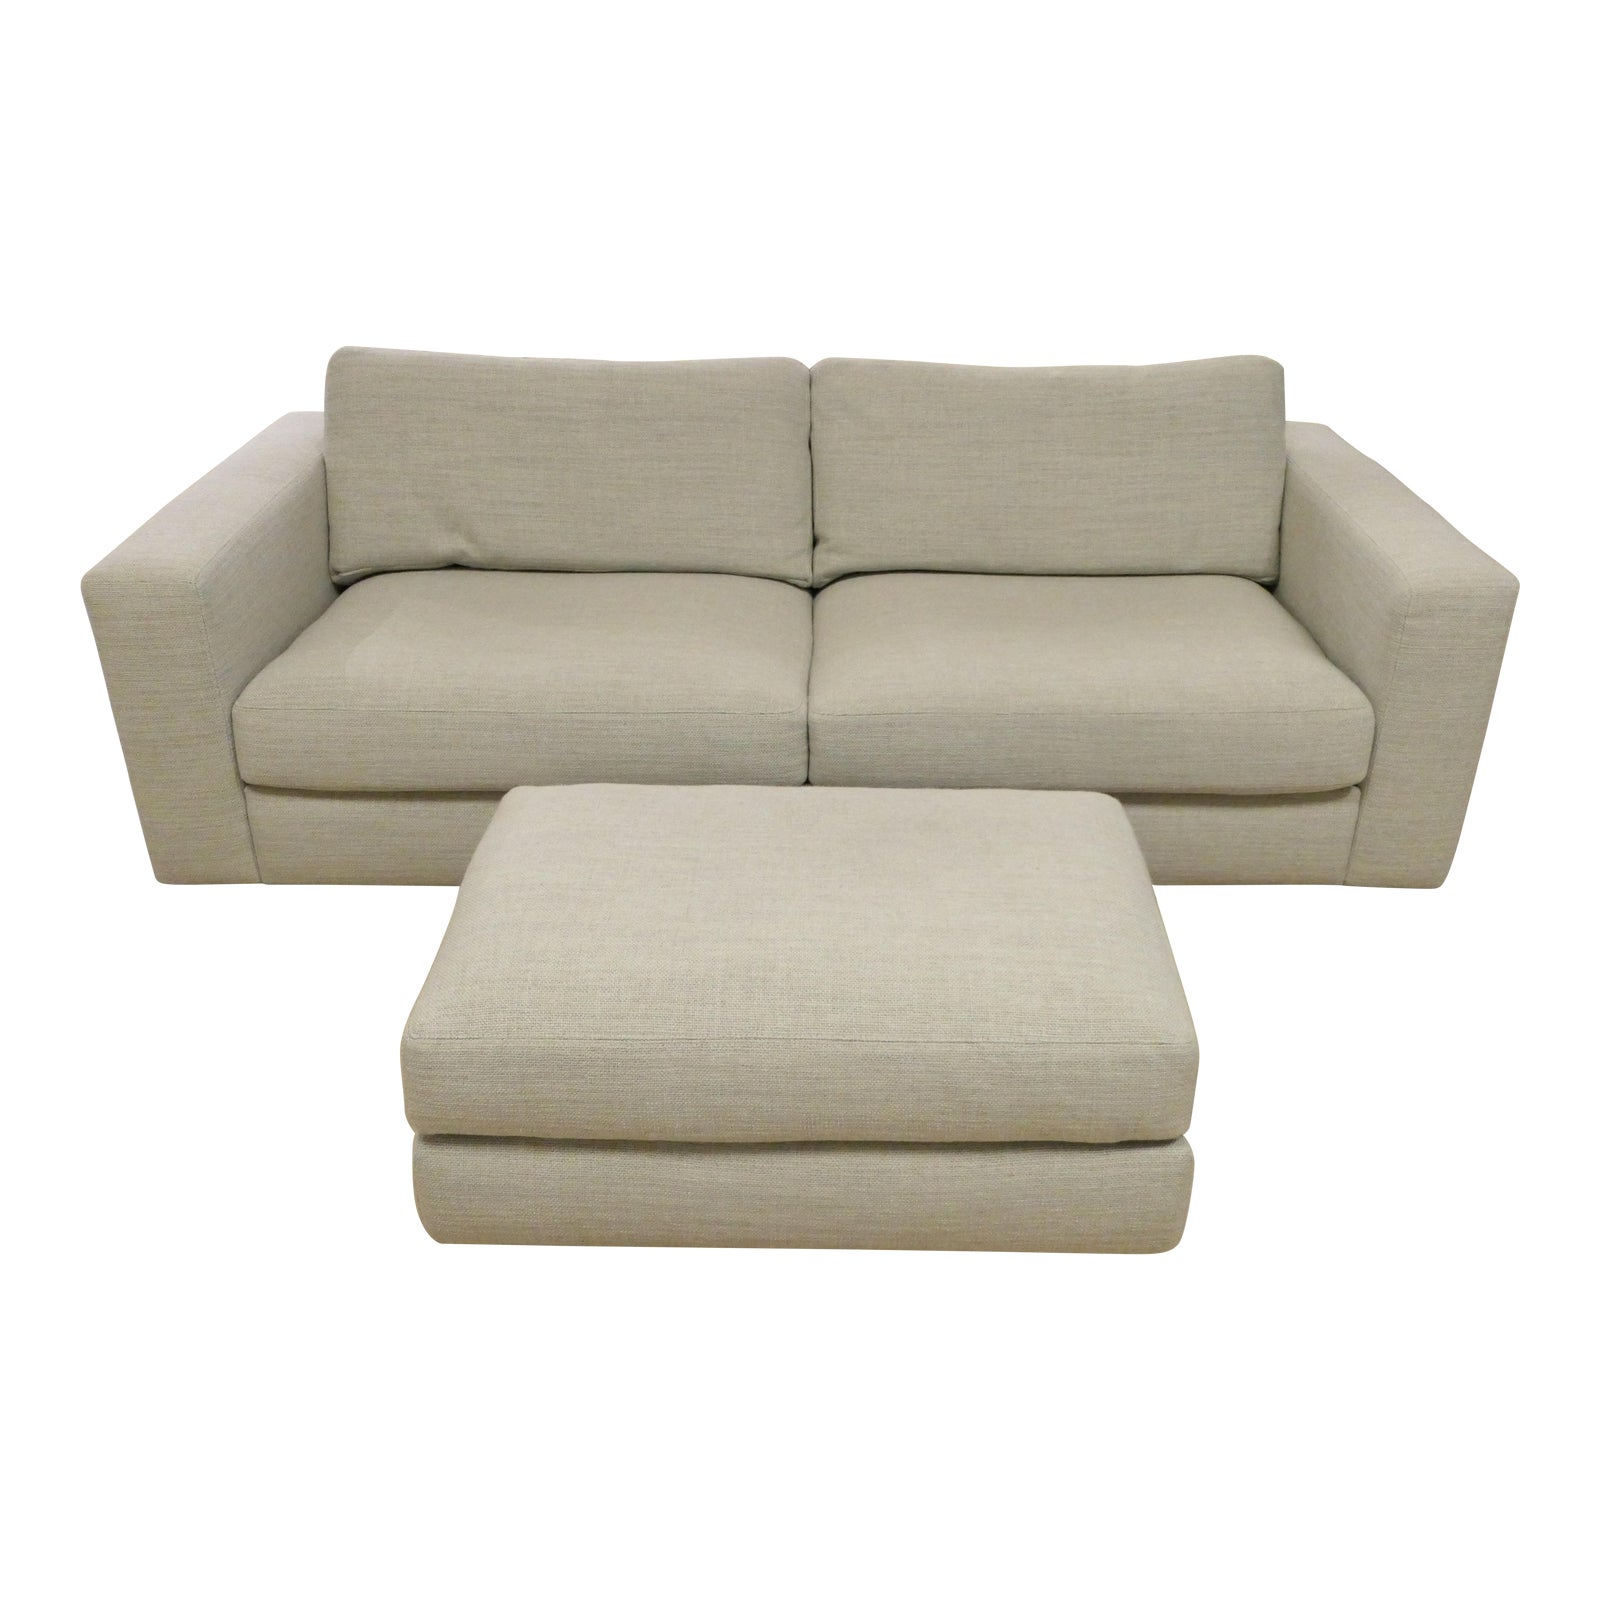 "Modern Design Within Reach ""Reid"" Sofa and Ottoman"